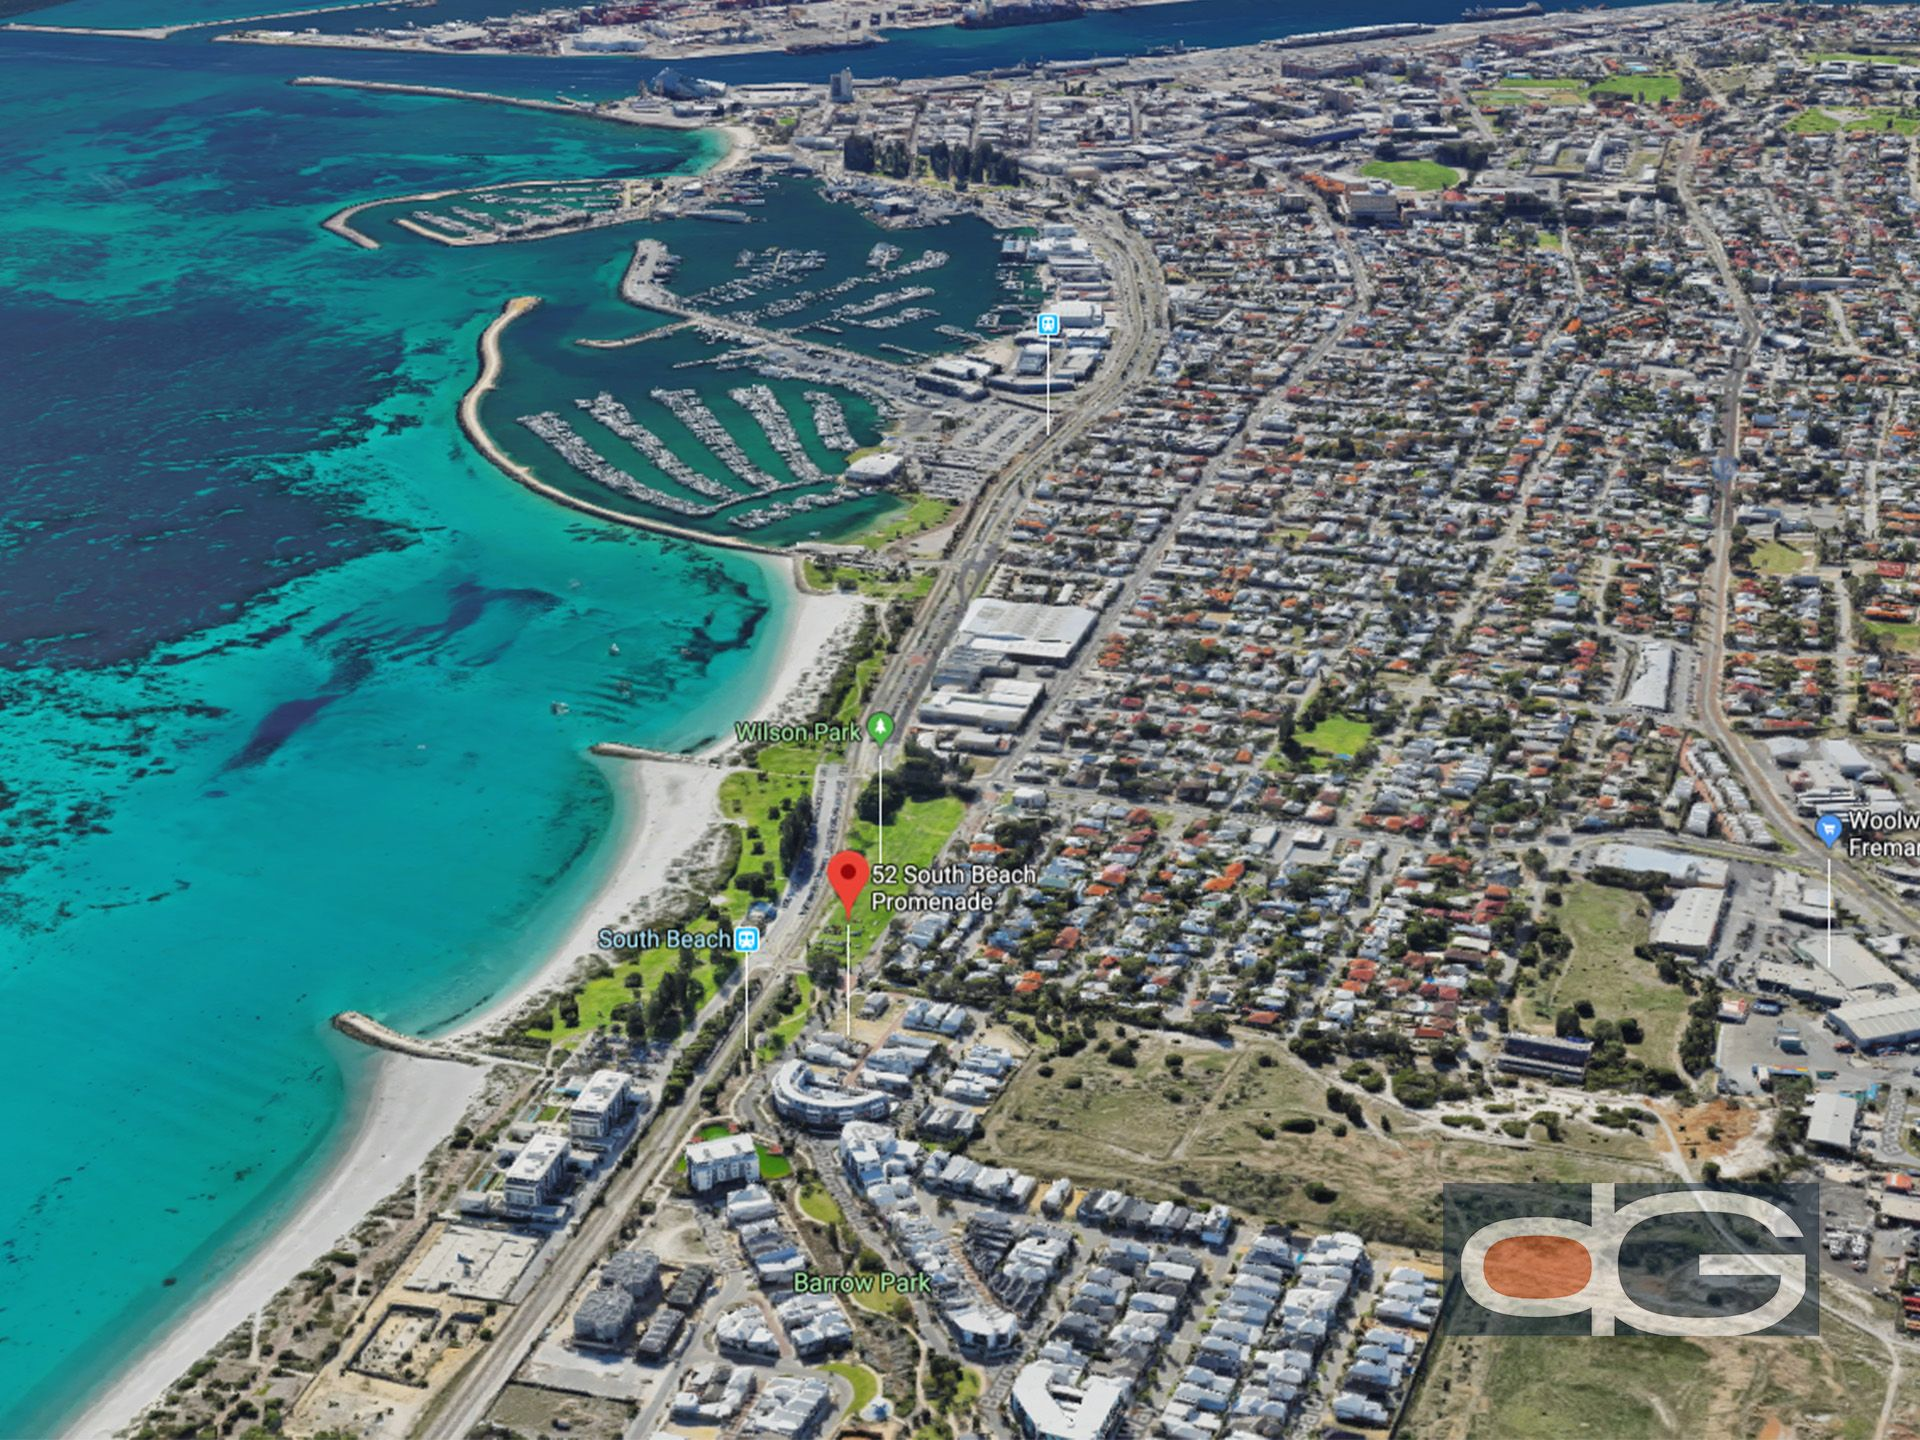 52 South Beach Promenade, South Fremantle